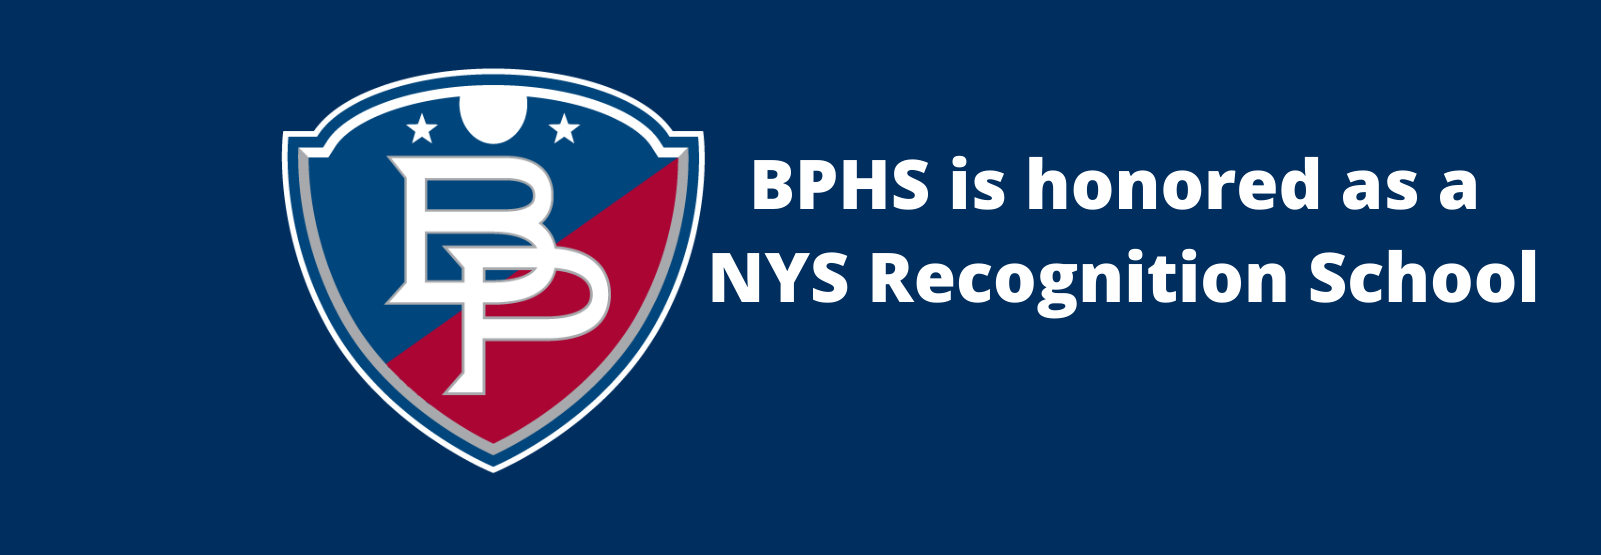 BPHS honored as Recognition School